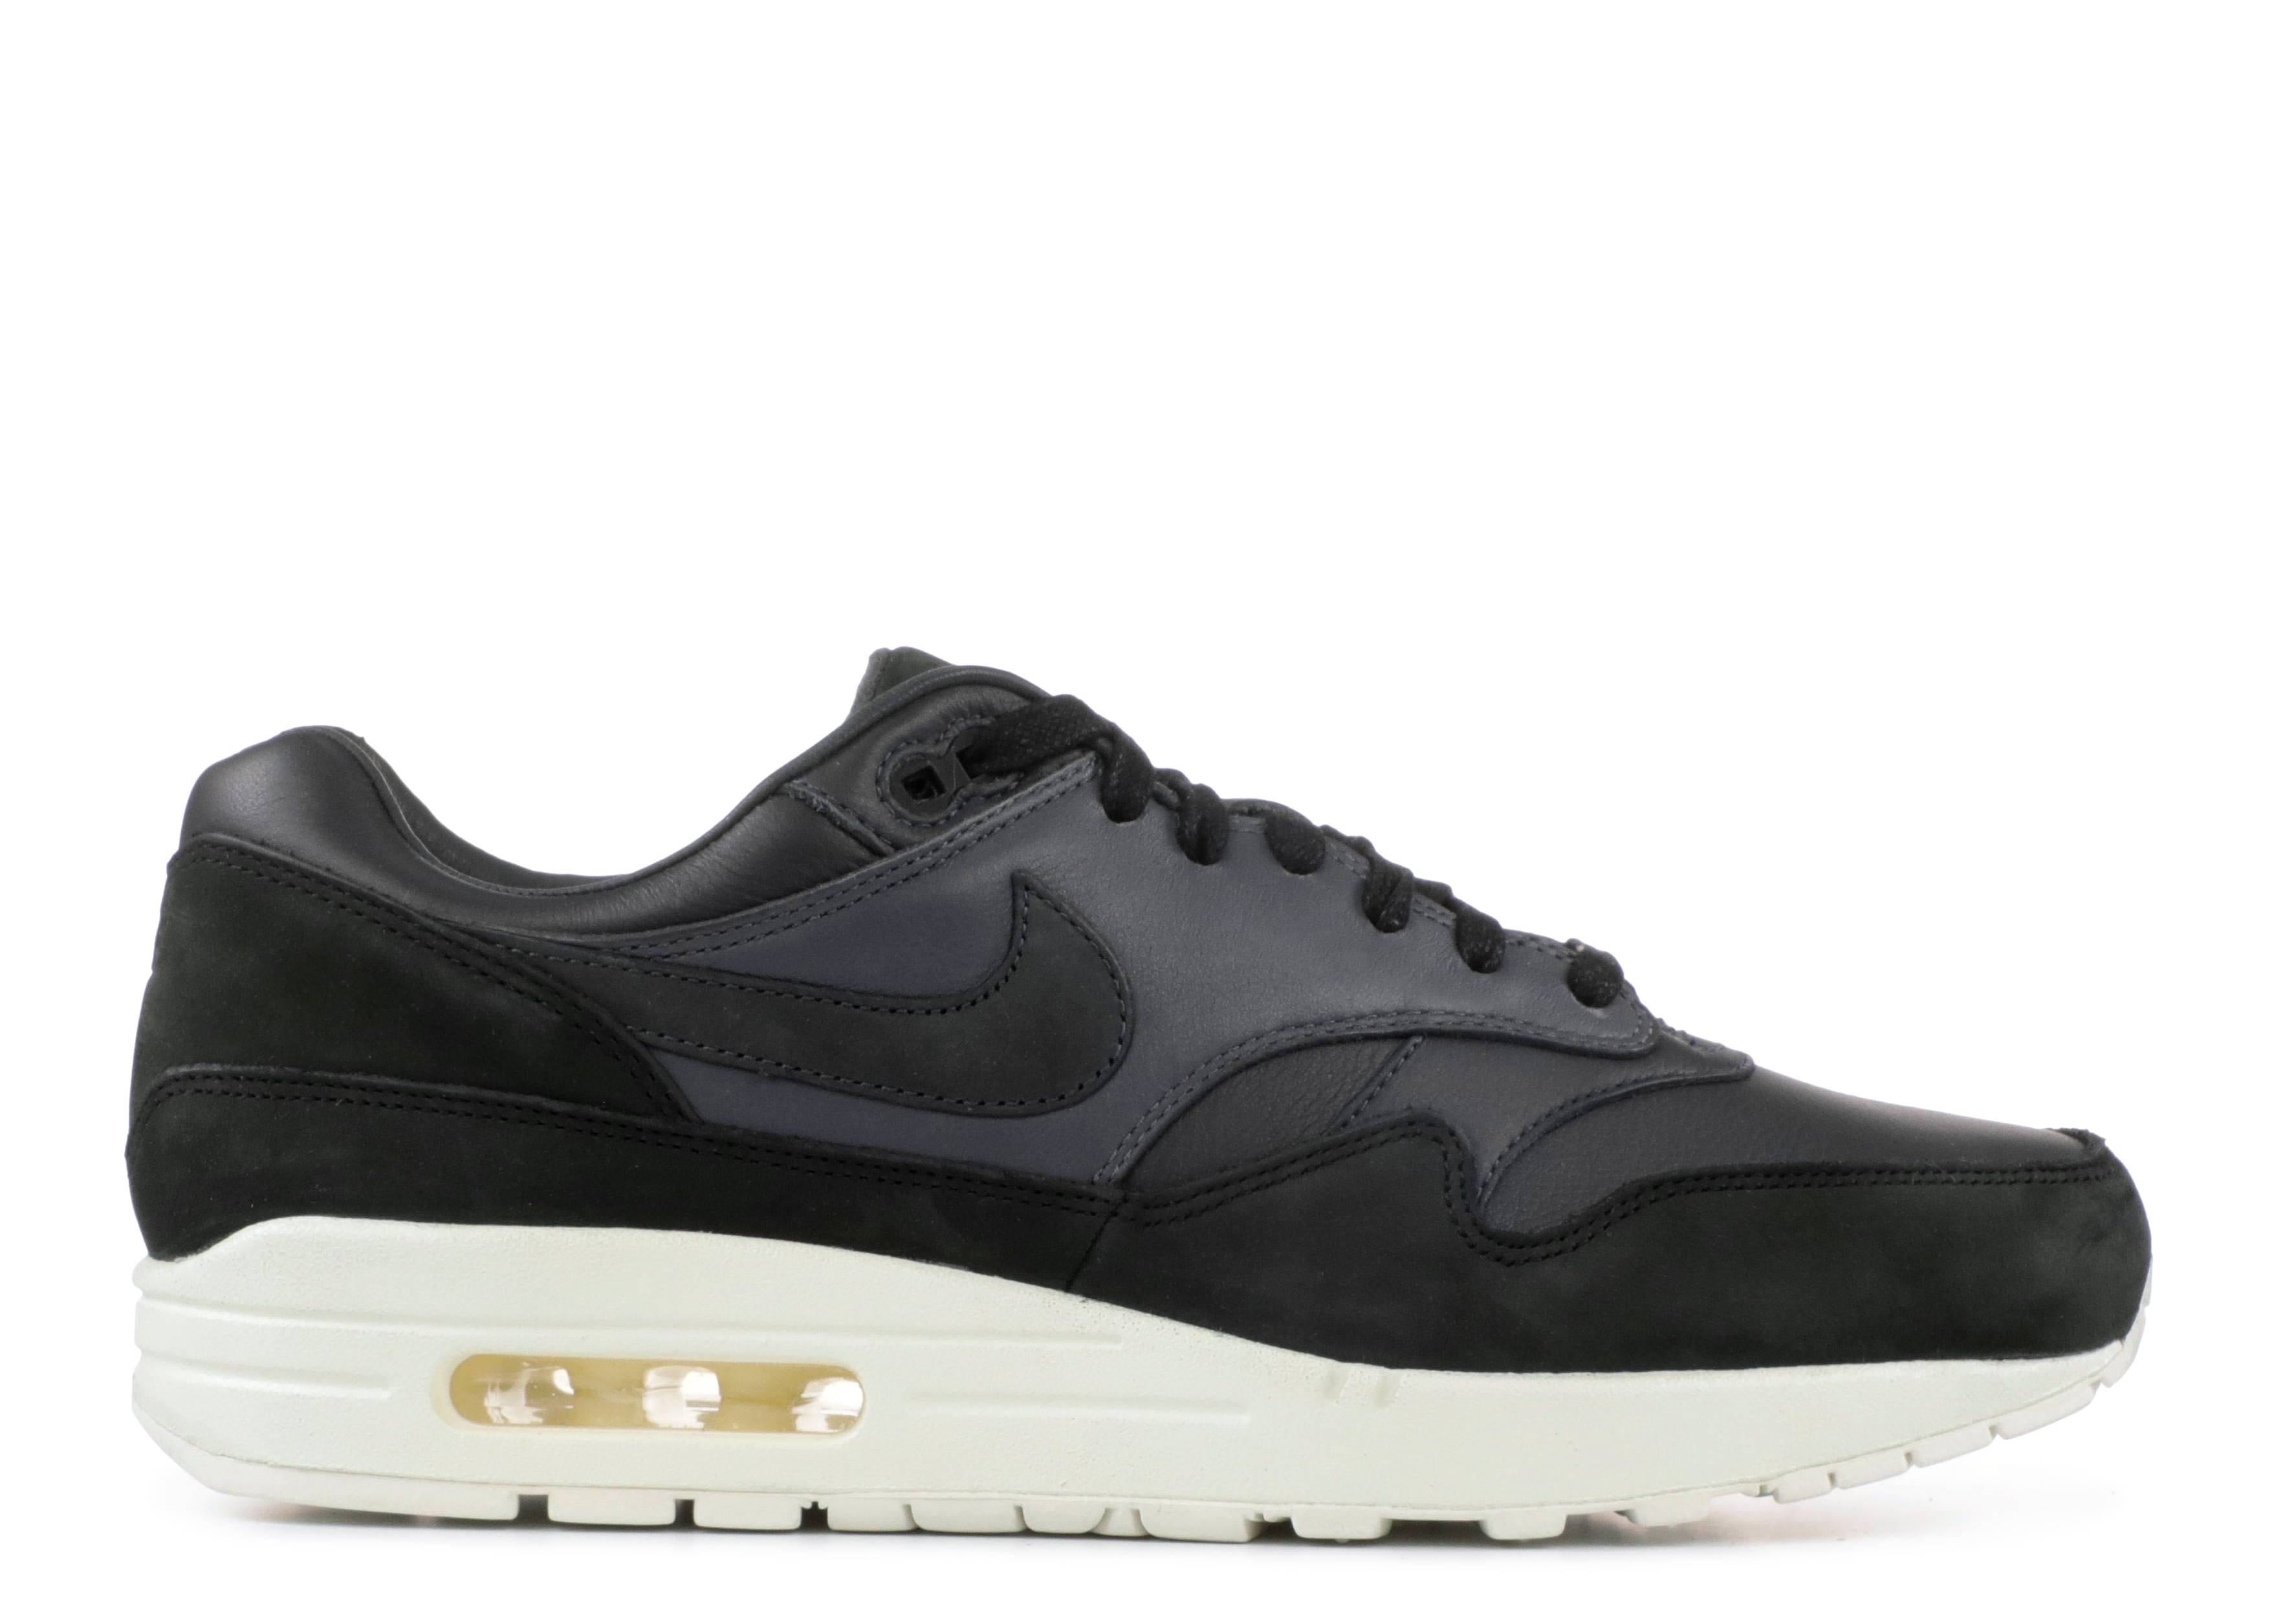 Nikelab Air Max 1 Pinnacle - Nike - 859554 004 - black anthracite ... 704be4806